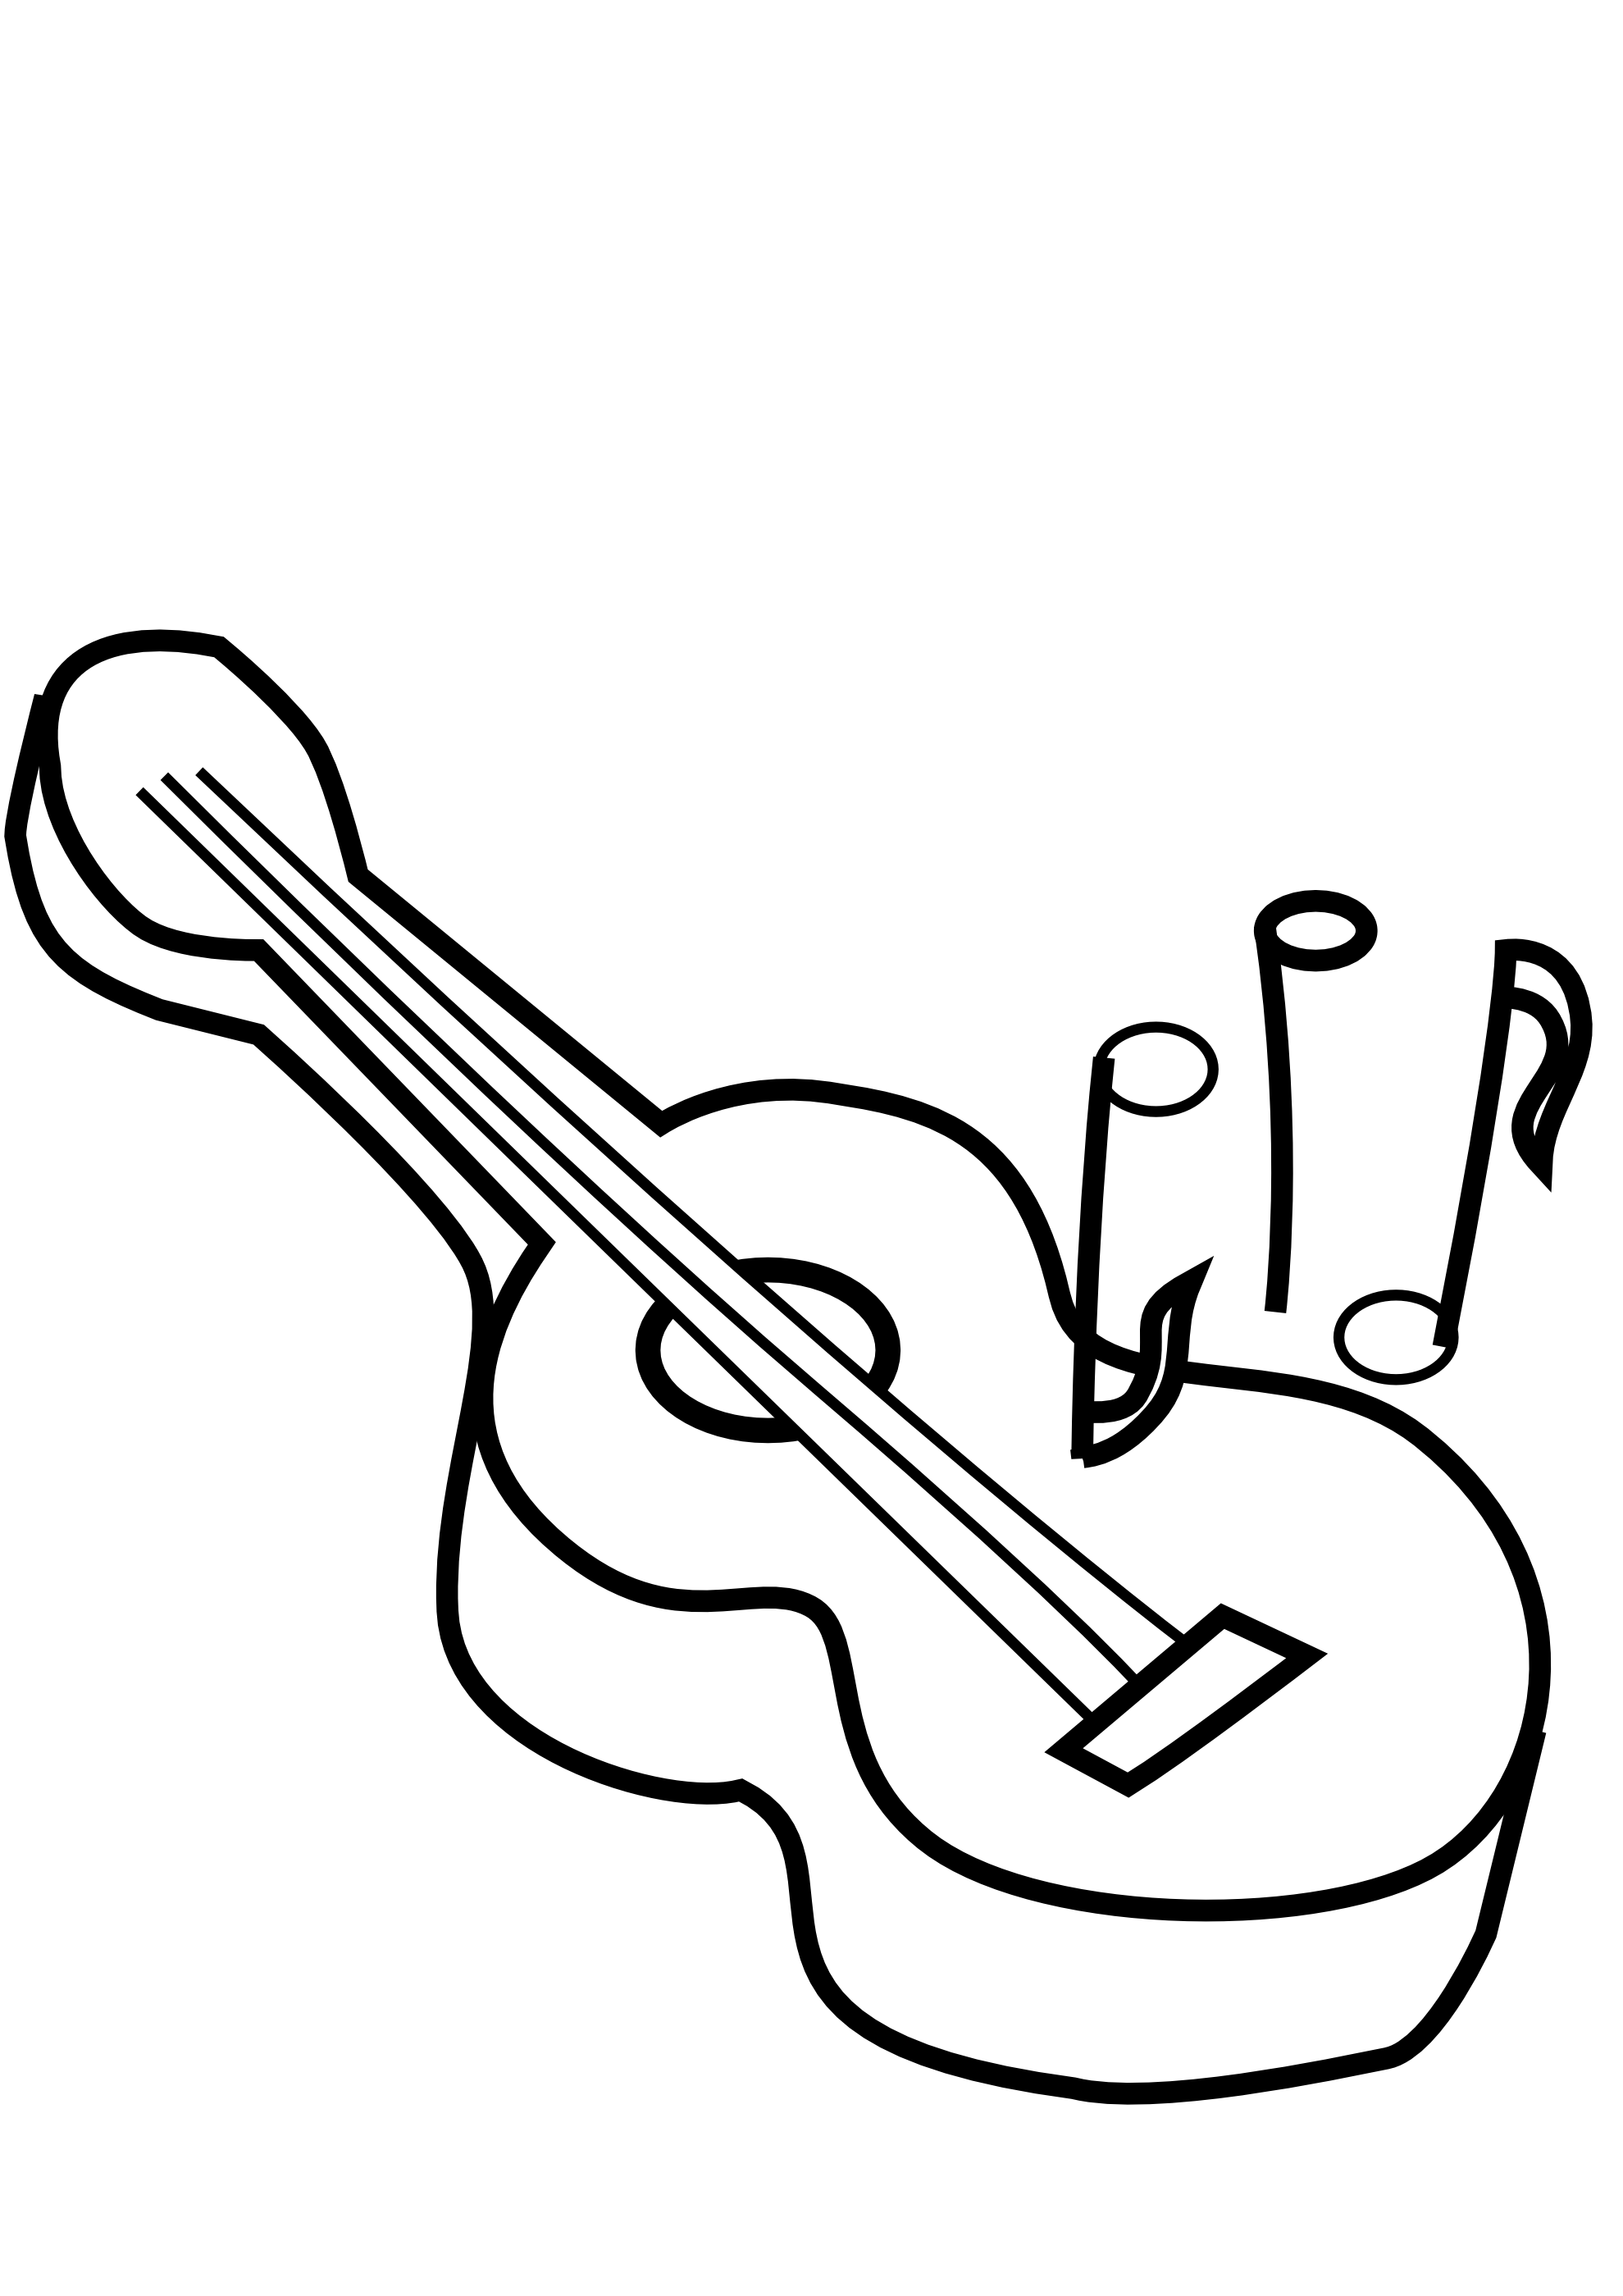 Guitar Coloring Page Latest Guitar Coloring Page With 6382 Free ... | 2799x1979